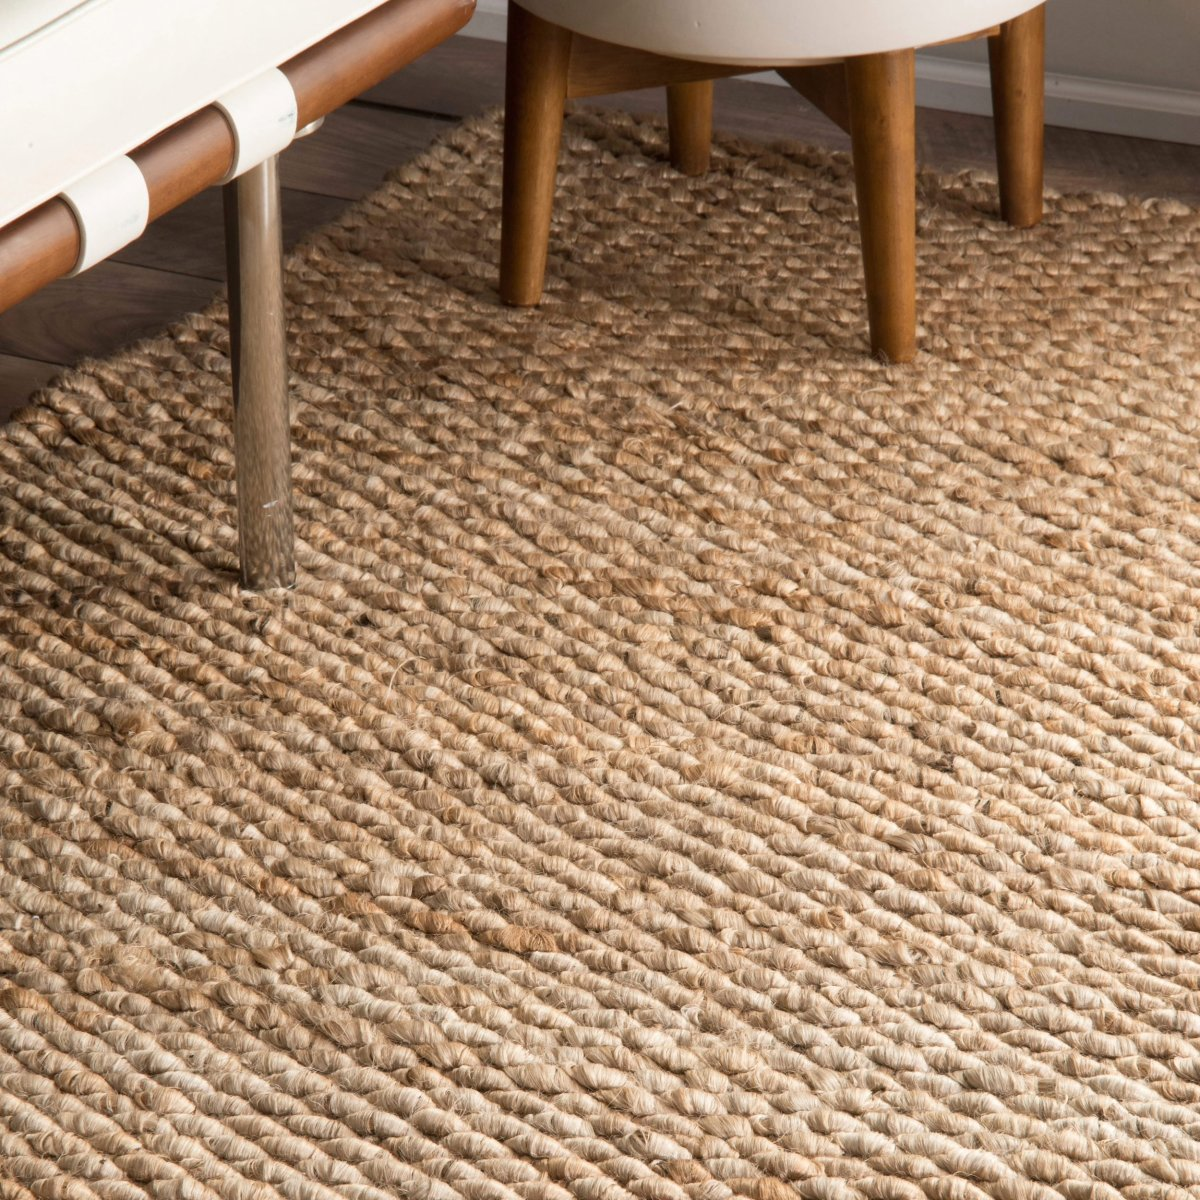 Natural Fiber Rug Qualities & Uses